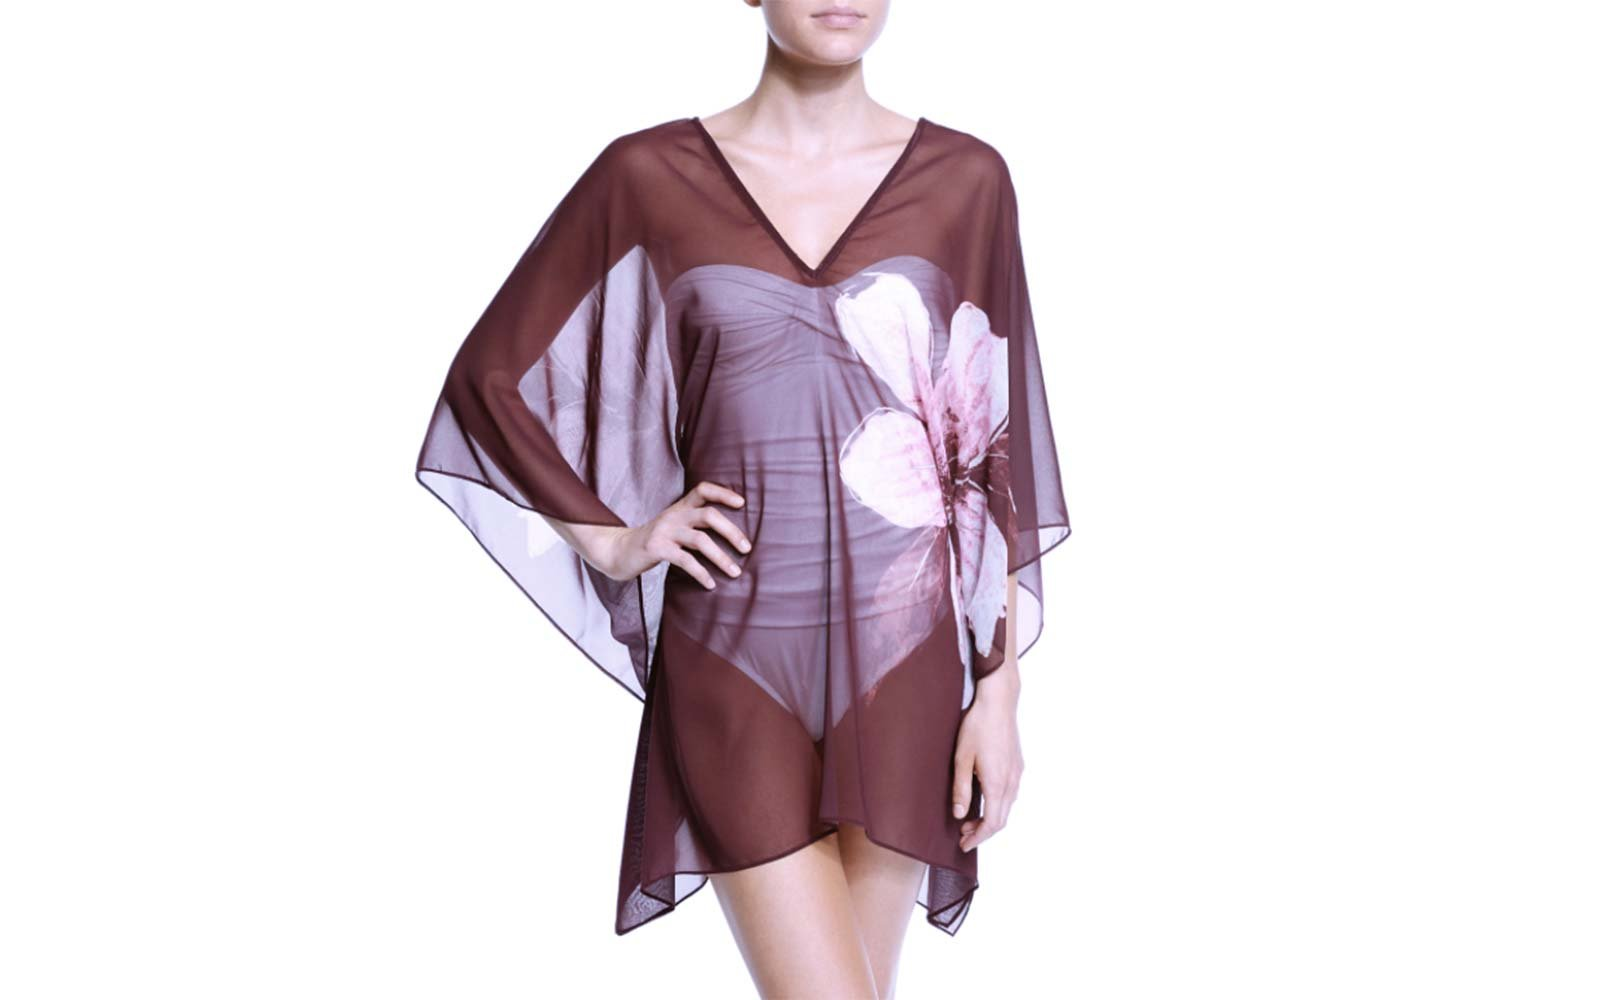 f8876e2f74 Stylish swim cover-ups to live in this summer | Travel + Leisure